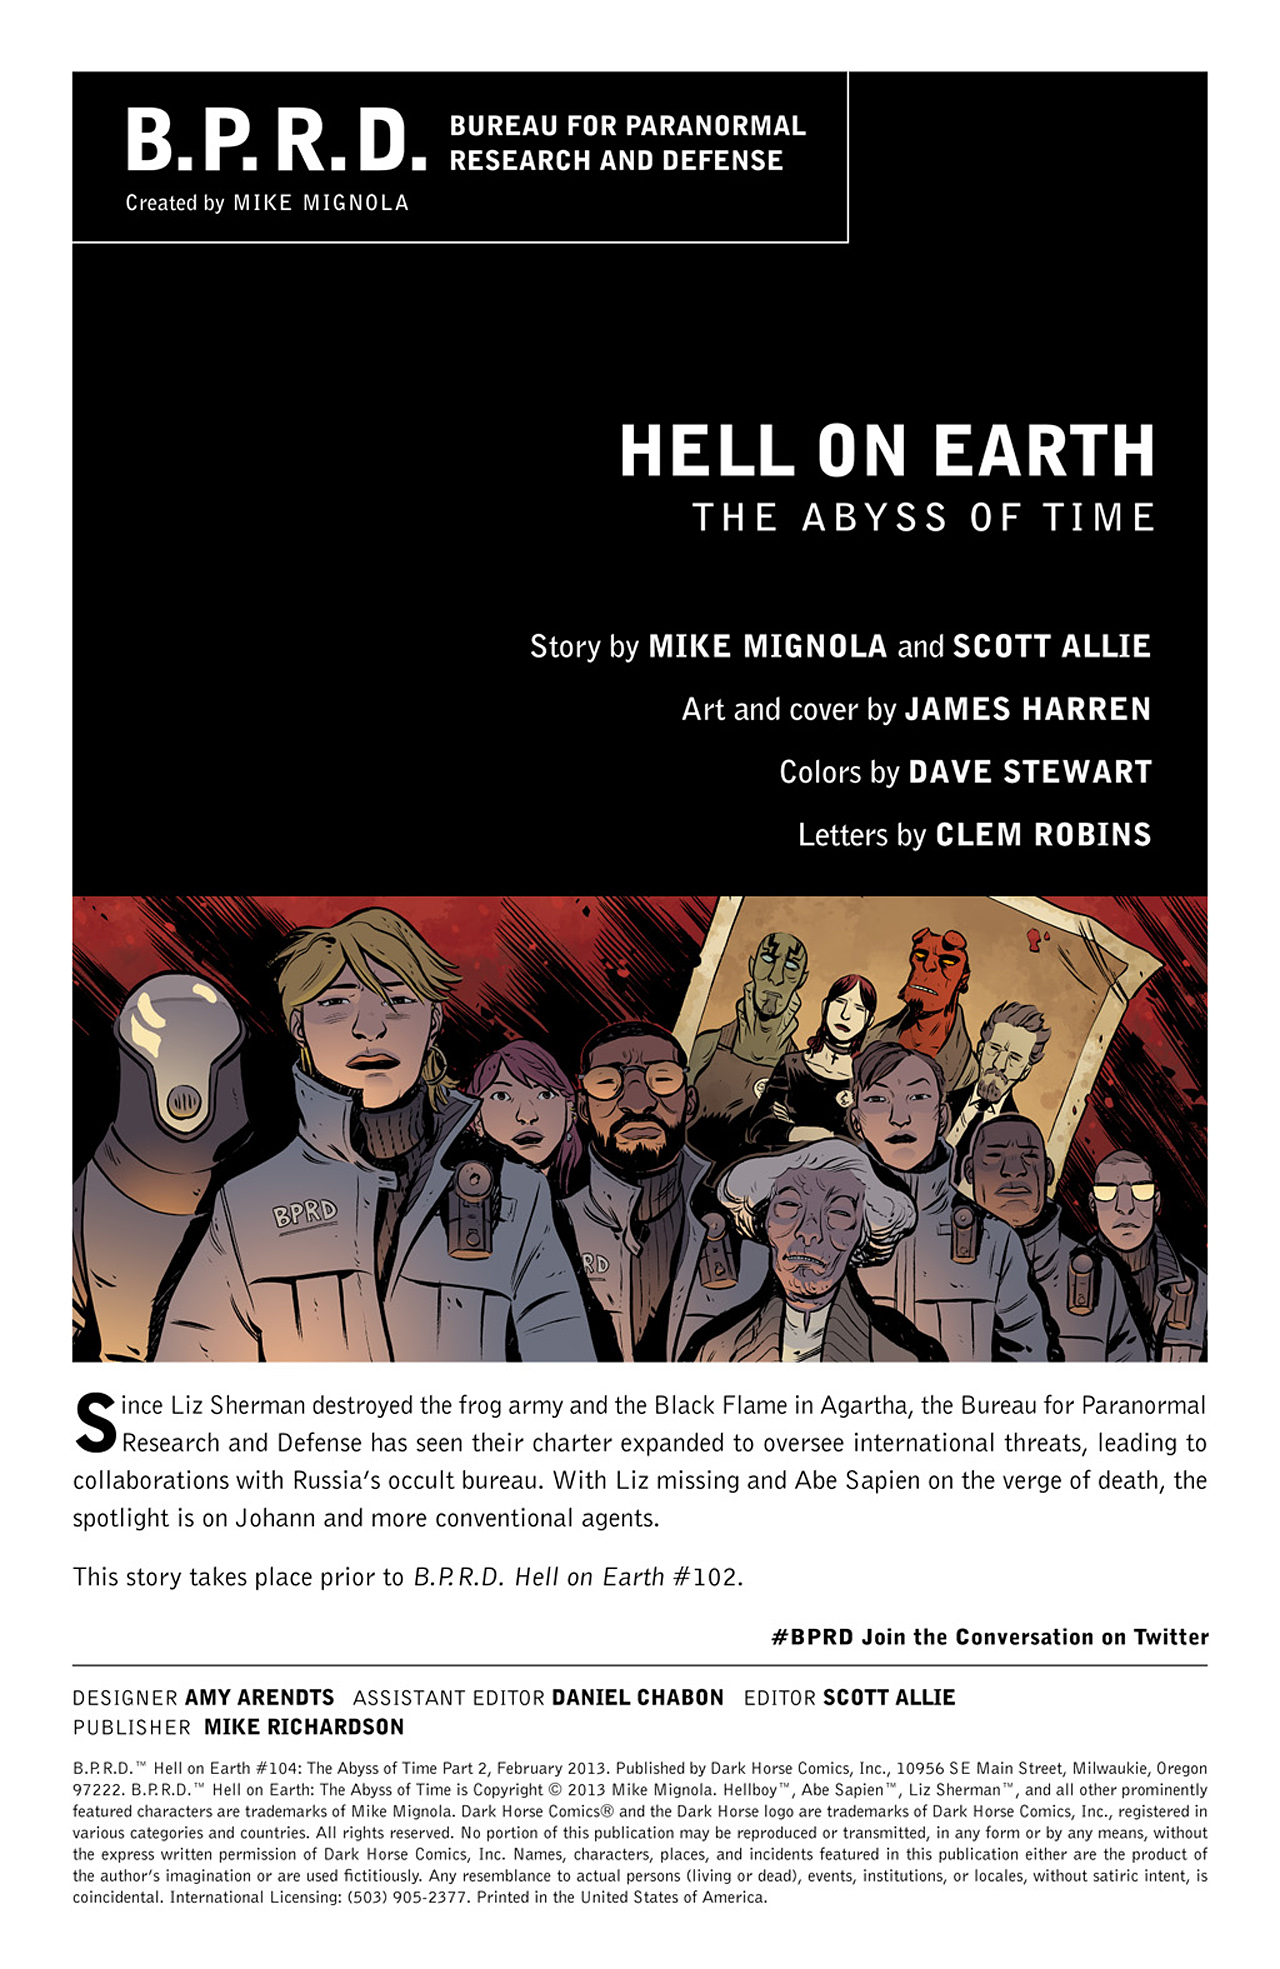 Read online B.P.R.D. Hell on Earth: The Abyss of Time comic -  Issue #104 - 2